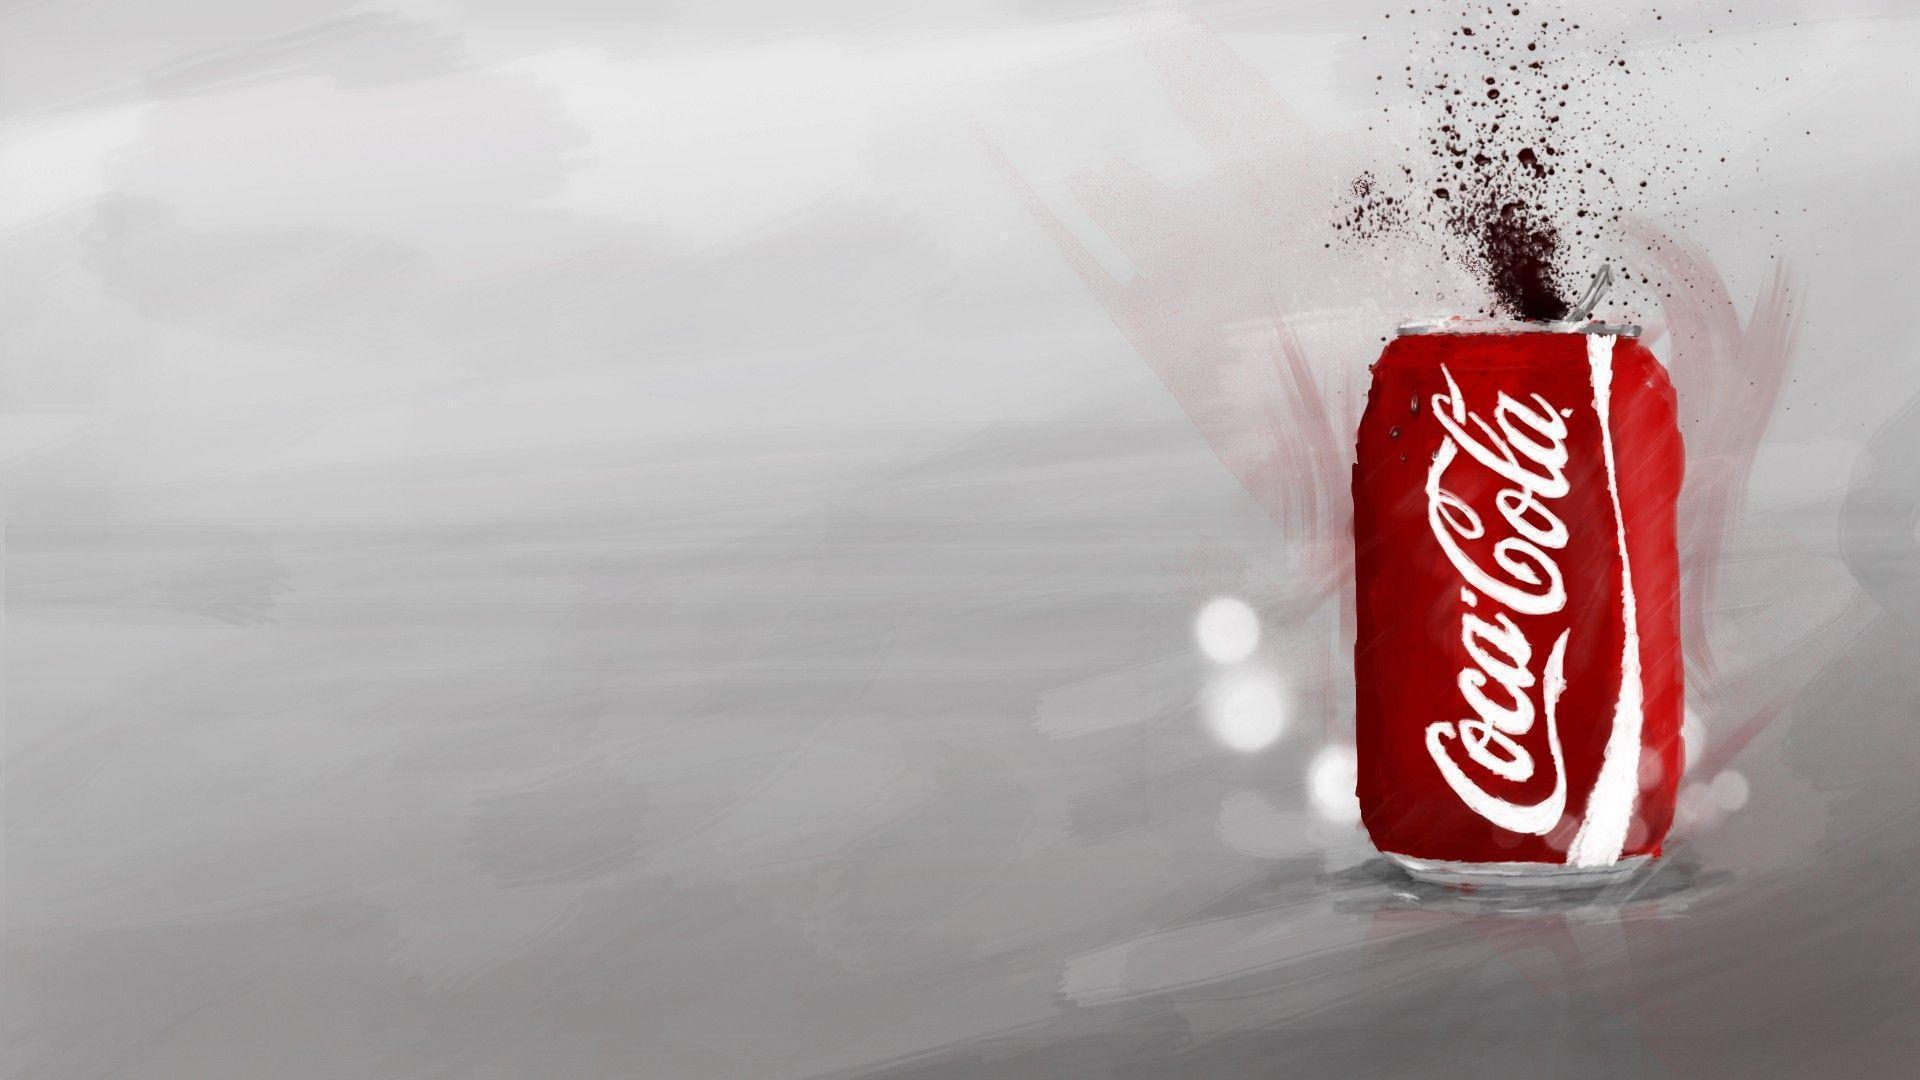 Coca Cola Wallpapers HD | HD Wallpapers, Backgrounds, Images, Art ...